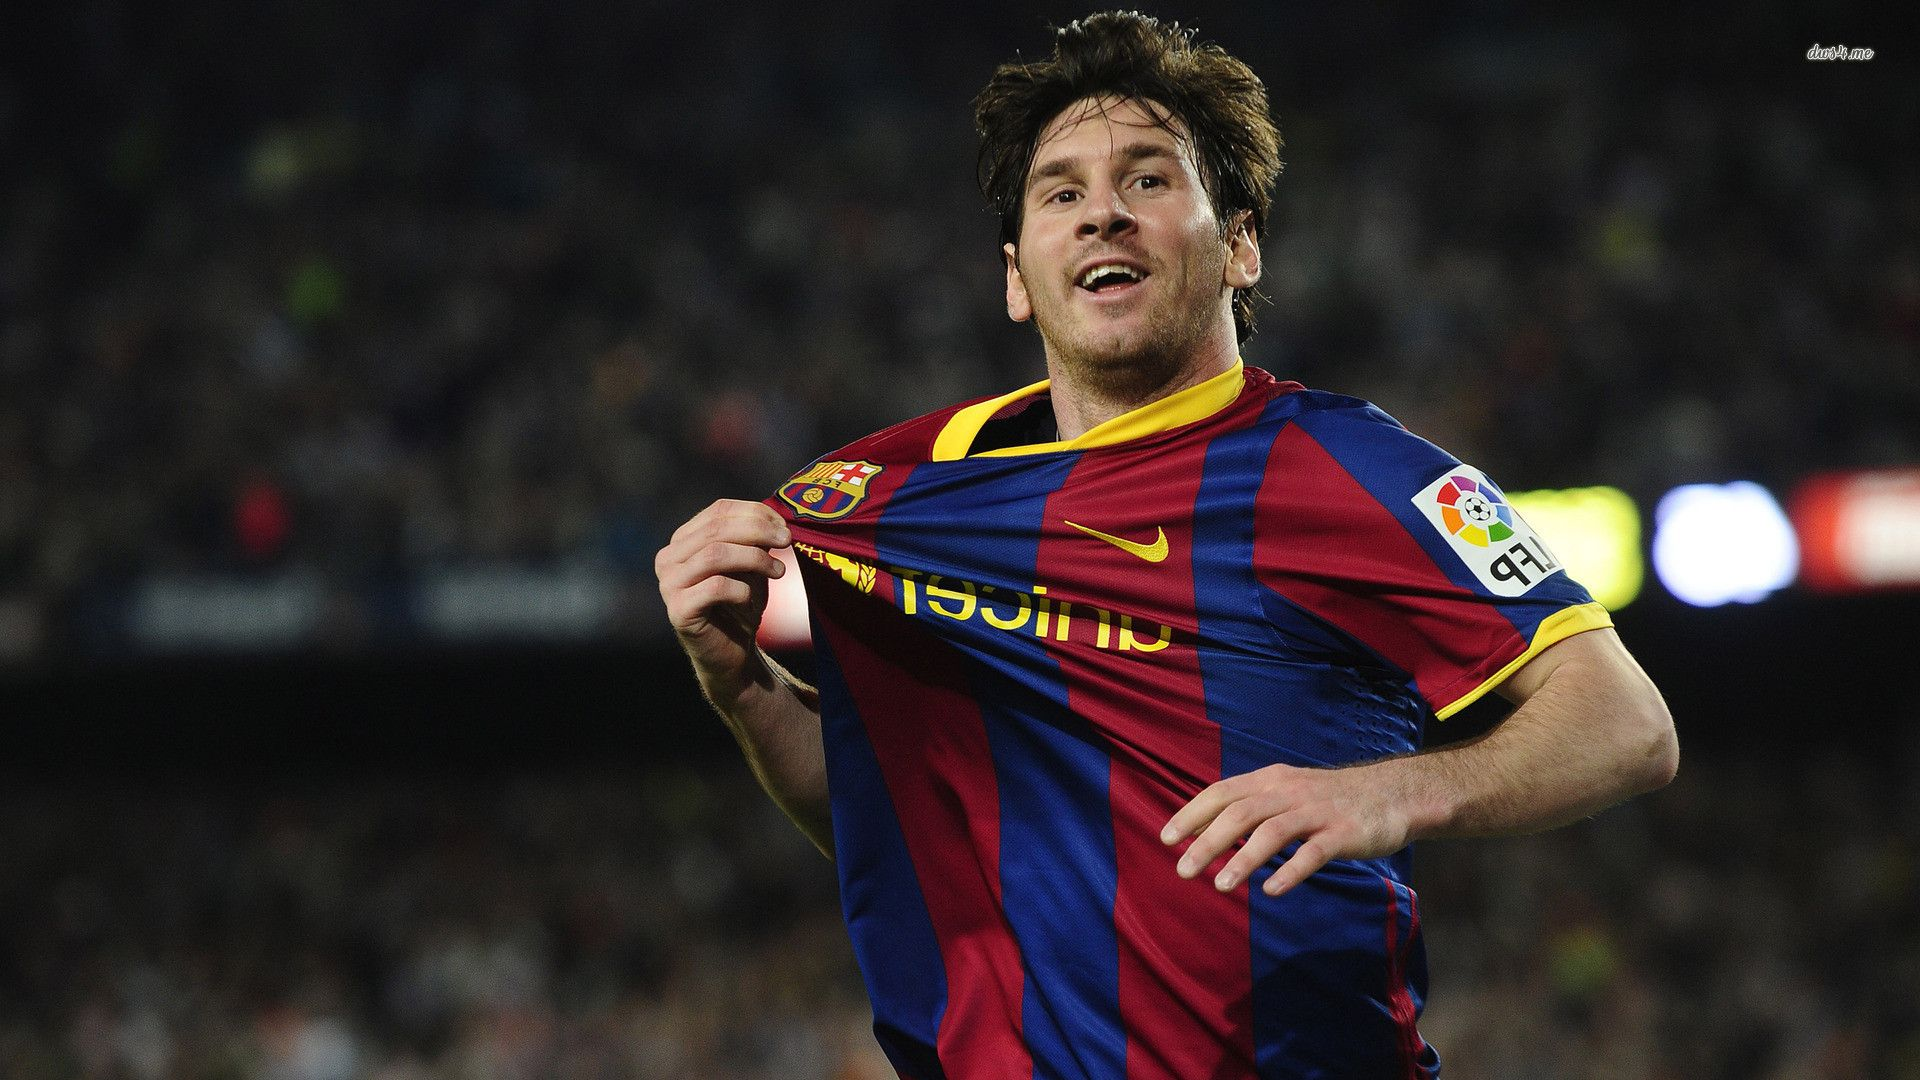 Lionel Messi 2015 Wallpapers HD 1080p 1920x1080